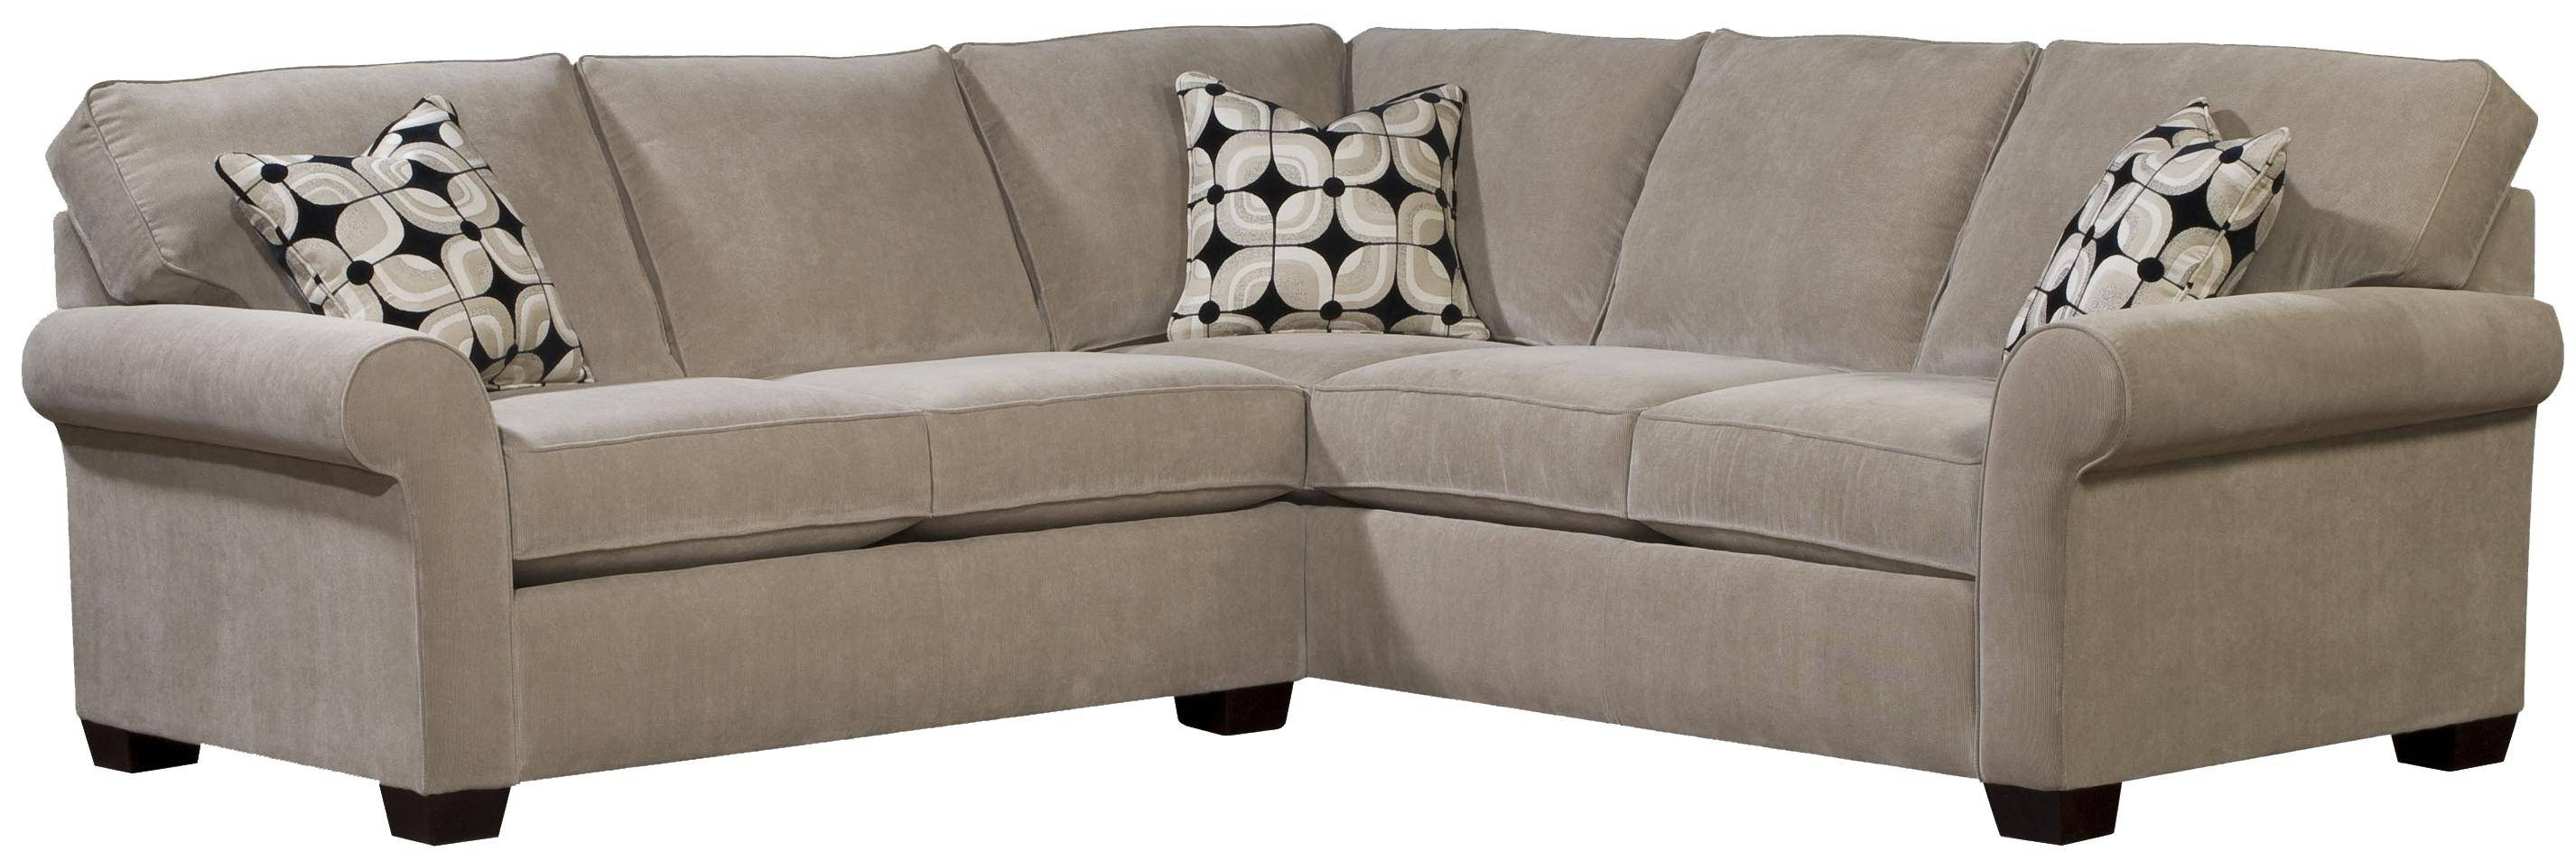 Broyhill Furniture Ethan Two Piece Sectional With Laf Full Sleeper for Broyhill Sectional Sleeper Sofas (Image 5 of 15)